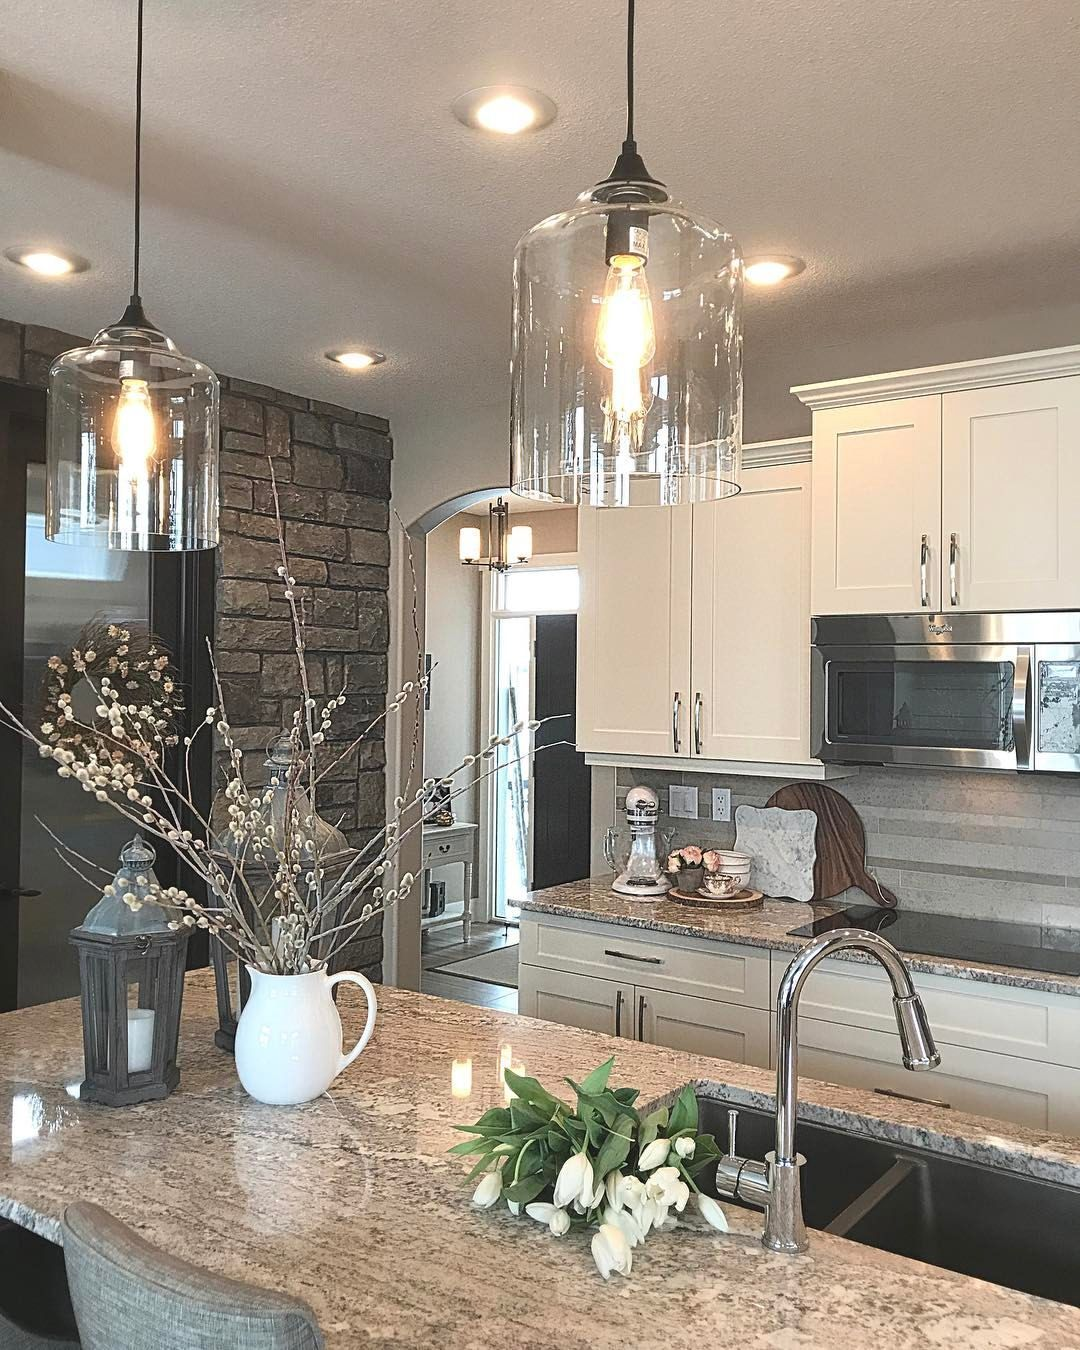 20 Unique Kitchen Lighting Ideas for Your Wonderful